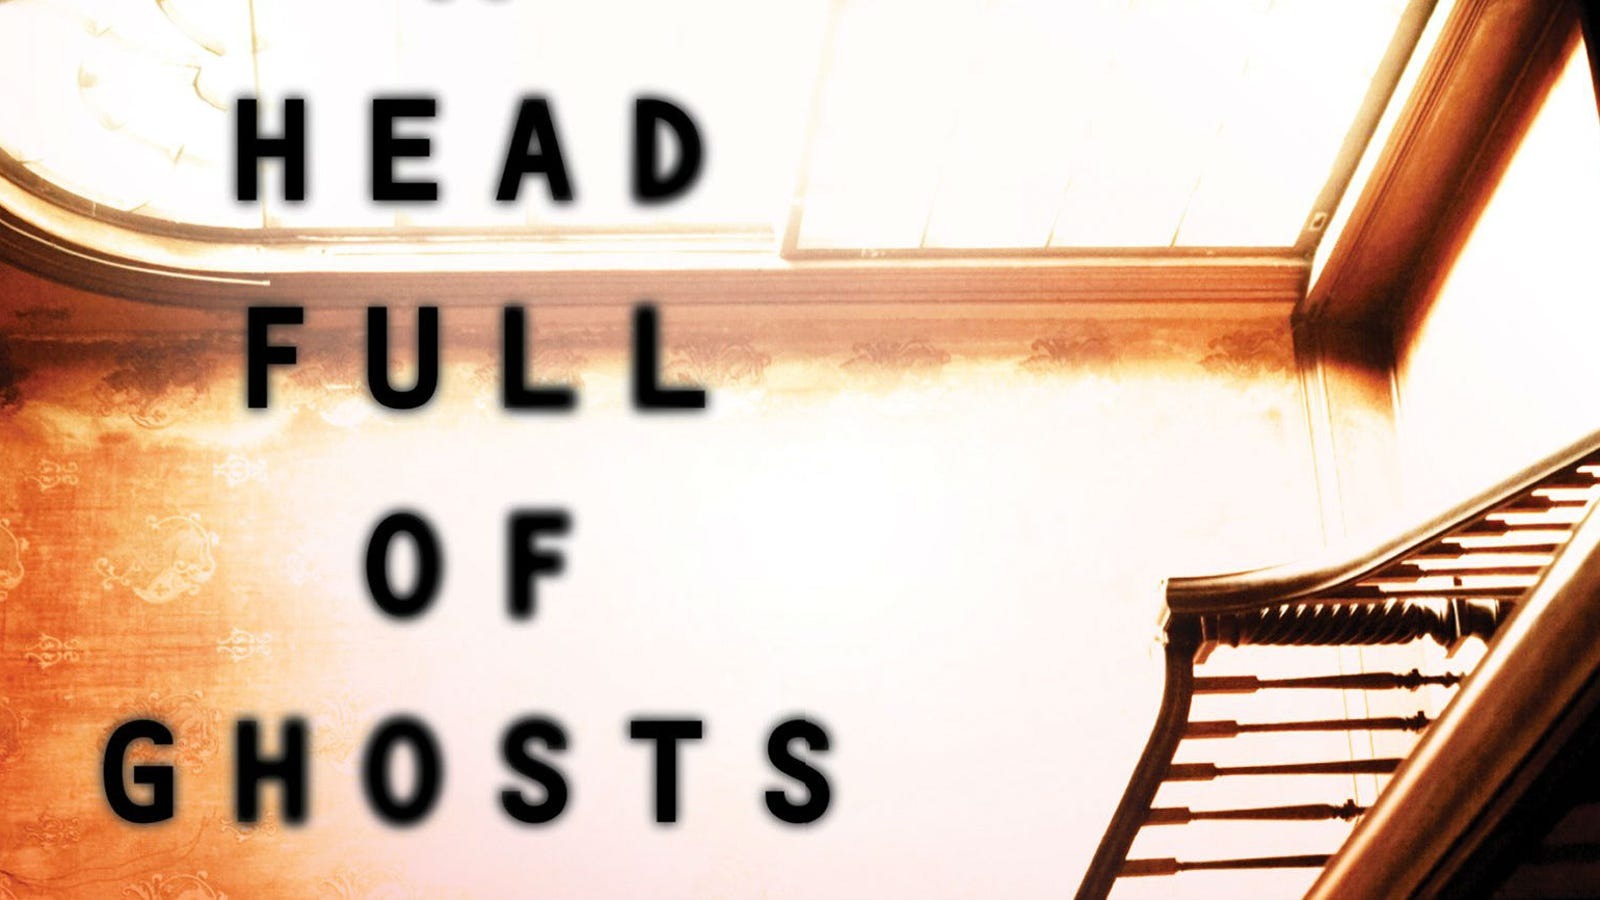 Paul Tremblay Says That His Latest Novel Is His Graduate Thesis on Horror Fiction